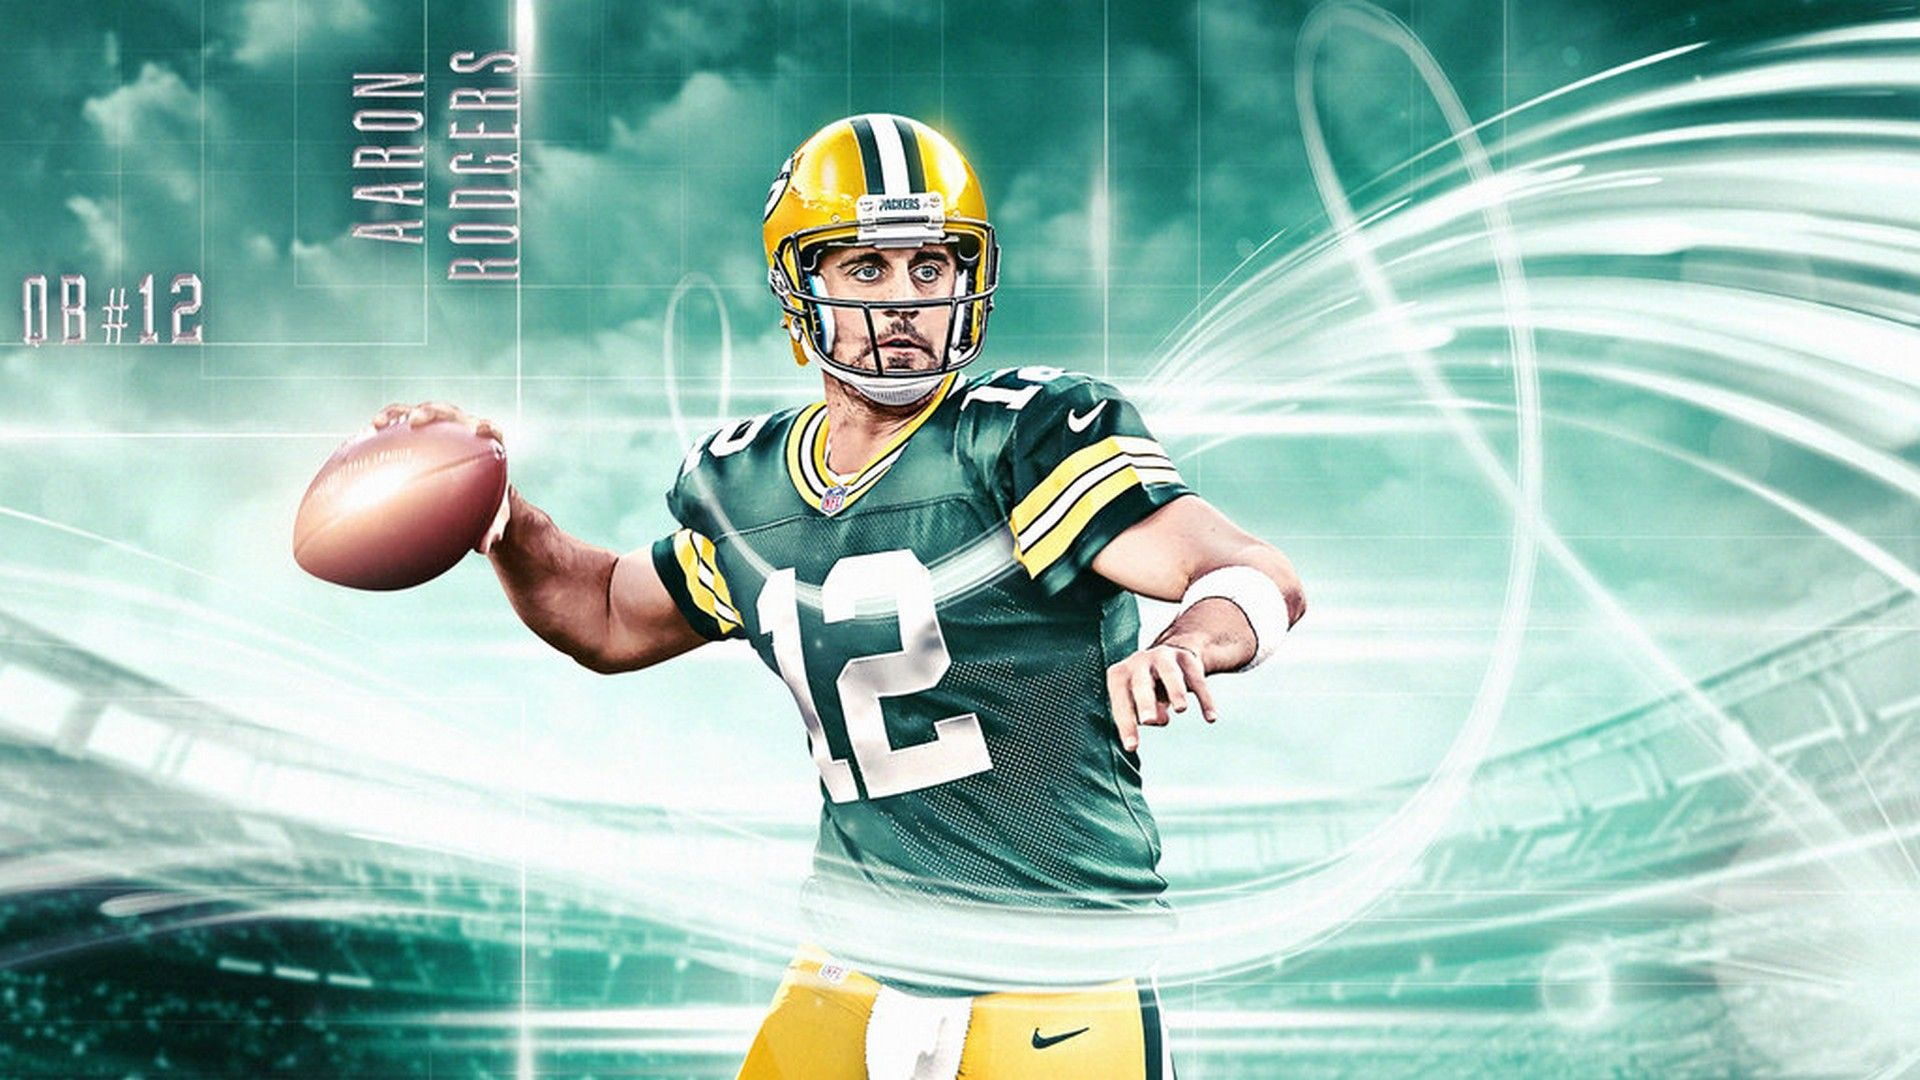 Aaron Rodgers wallpaper Picture design ideas